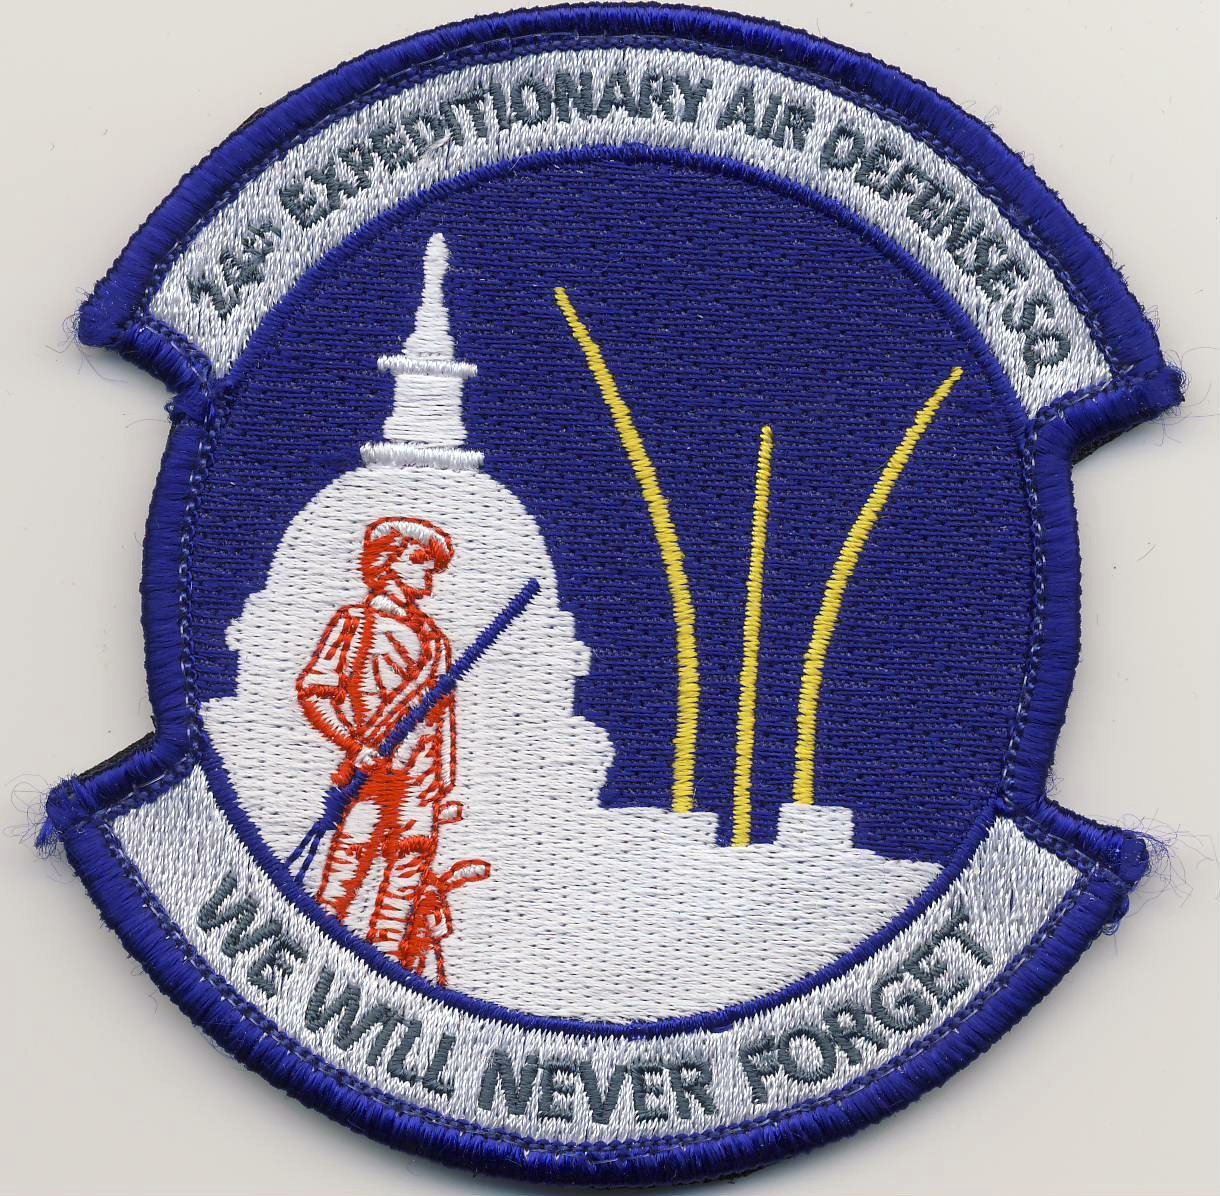 24th EADS Patch